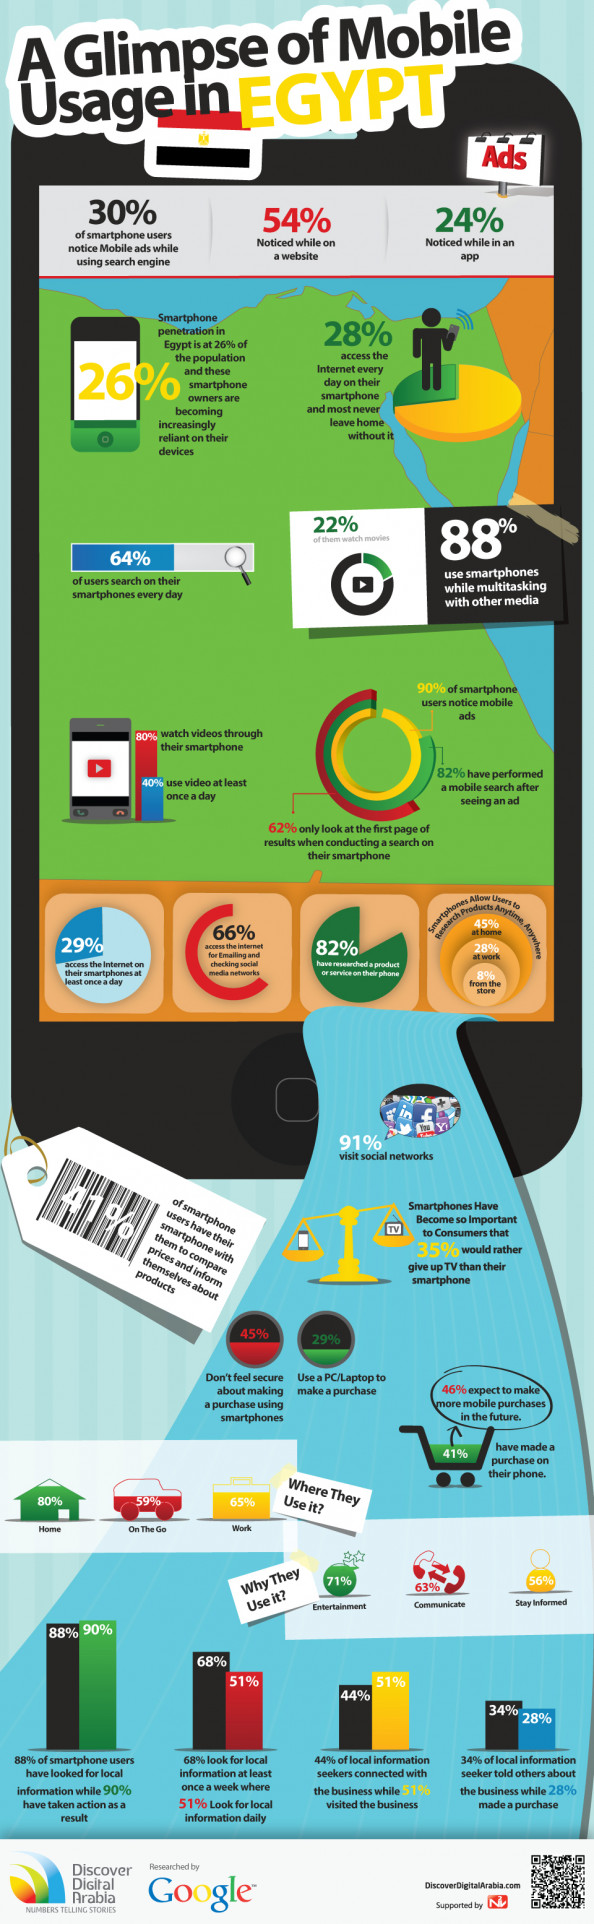 A Glimpse of Mobile Usage in Egypt Infographic